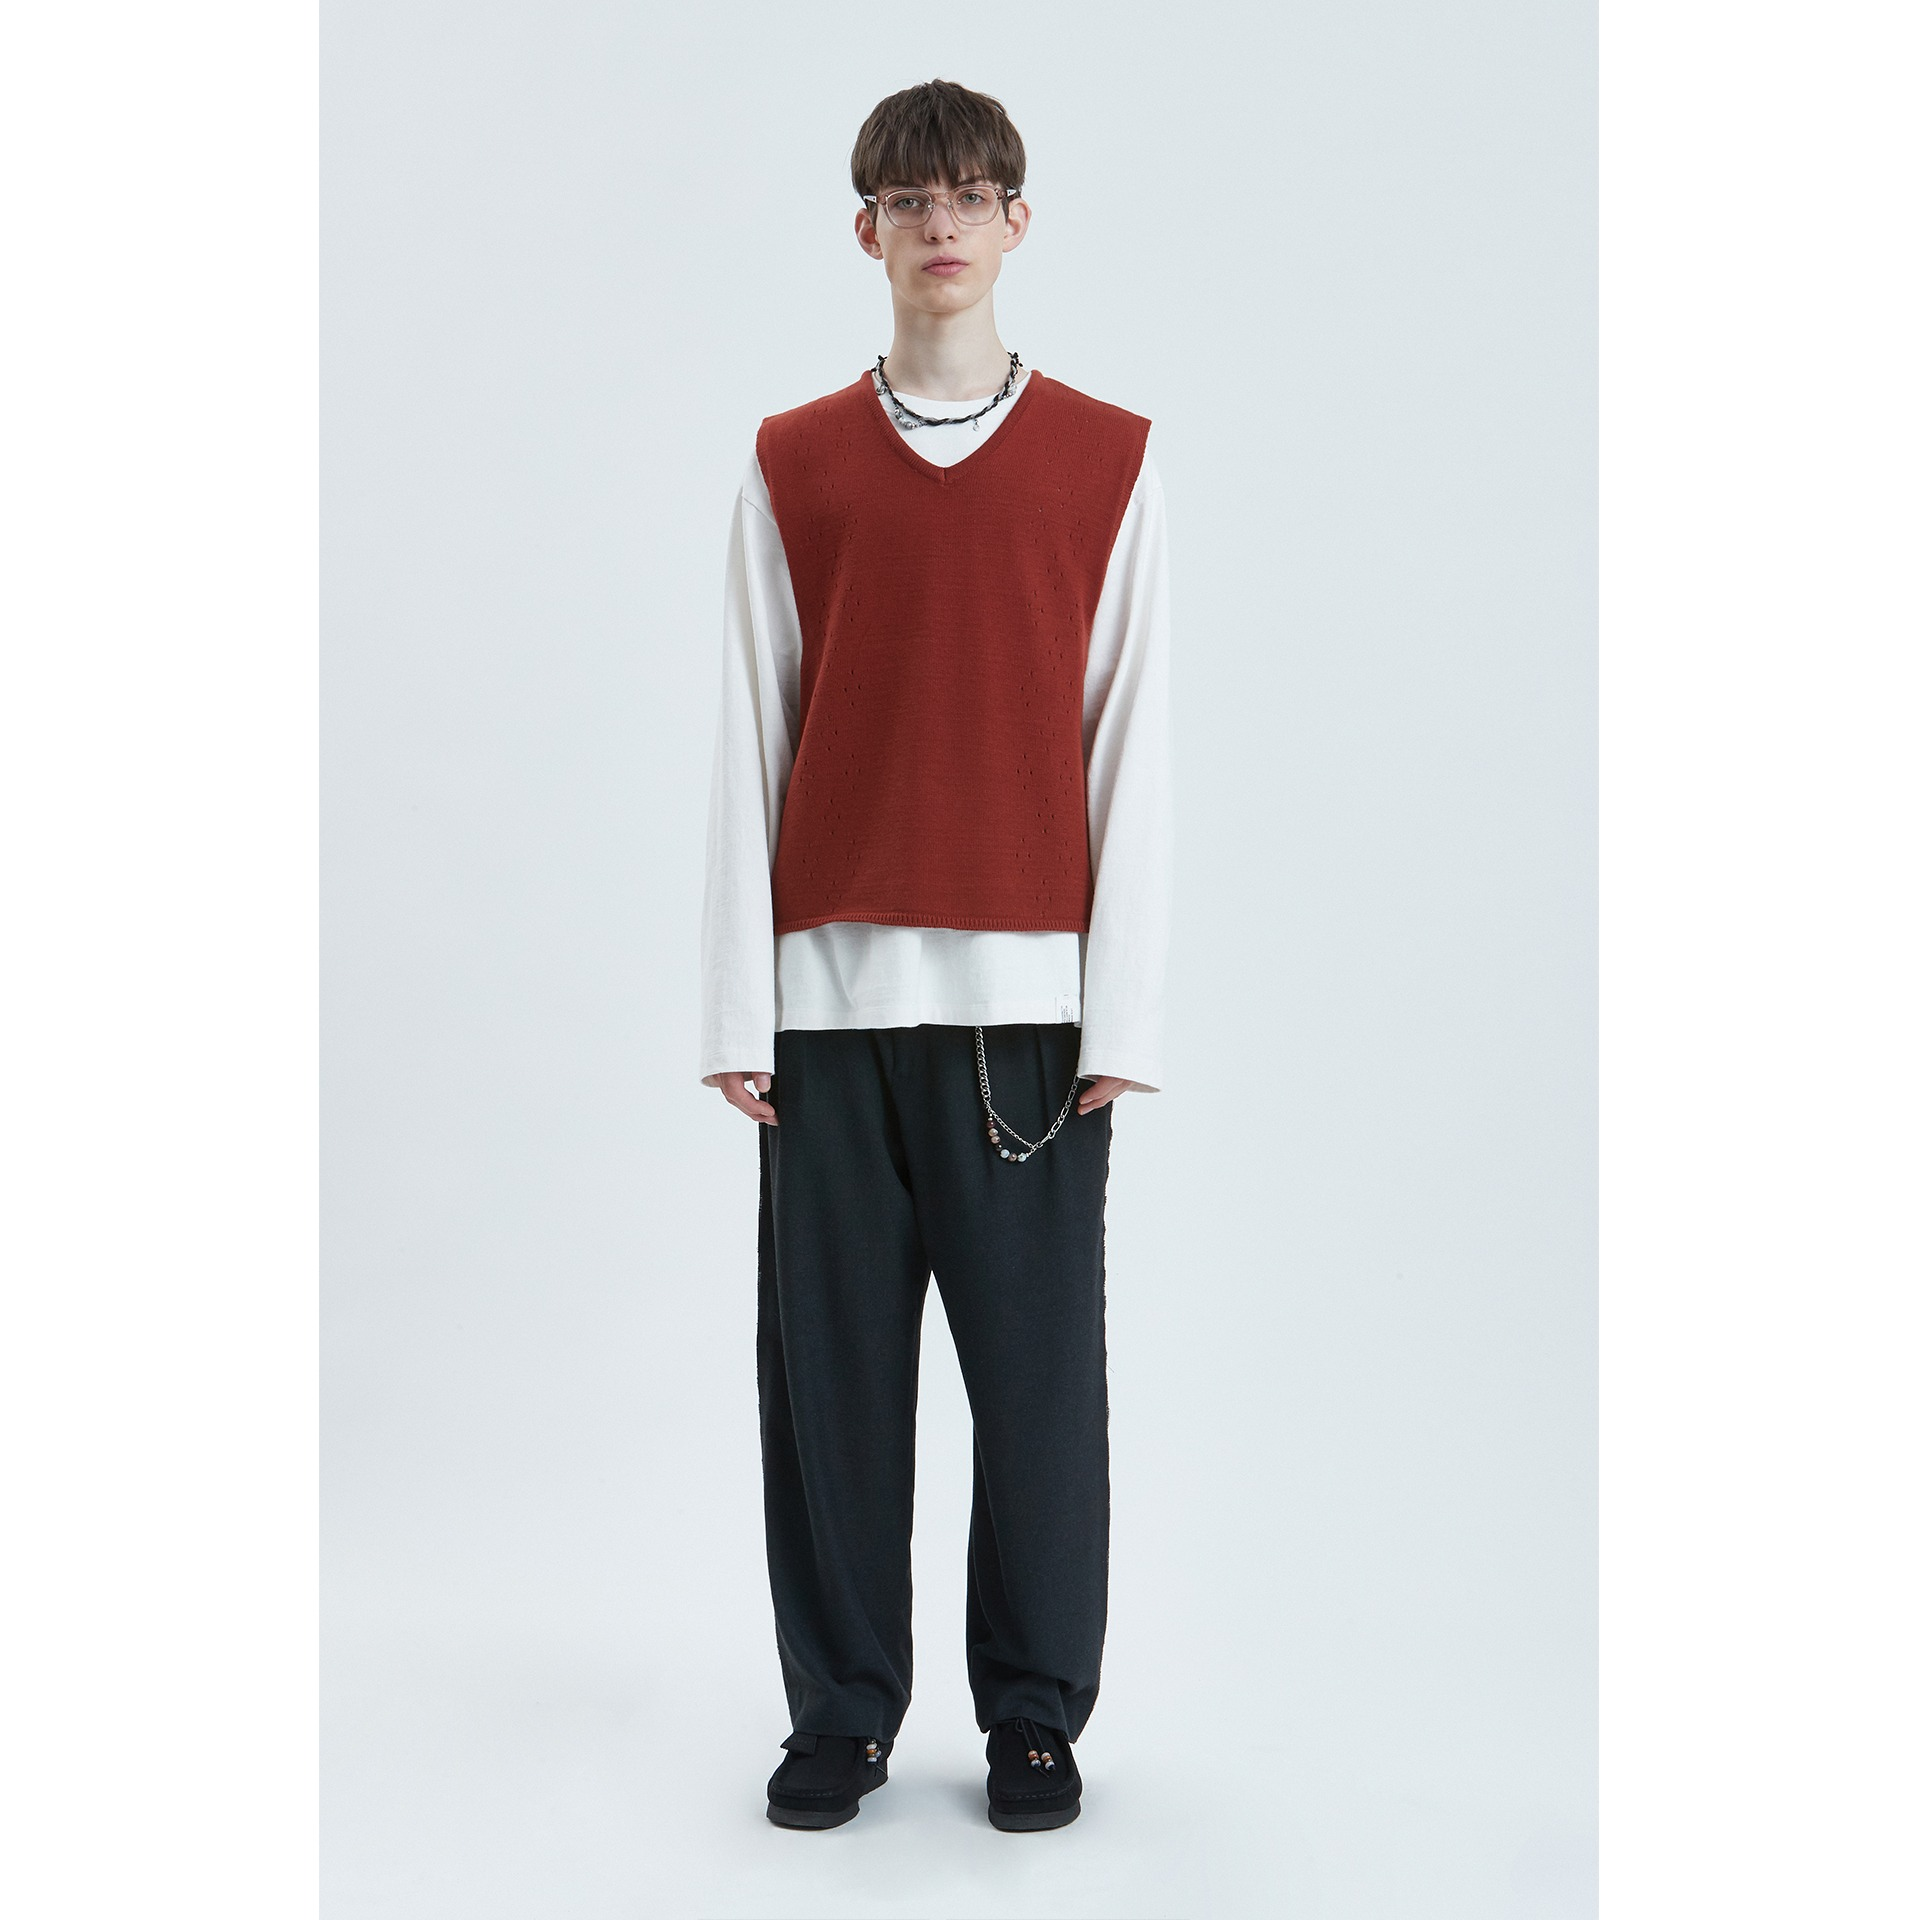 LIFUL SKASHI KNIT VEST red brown